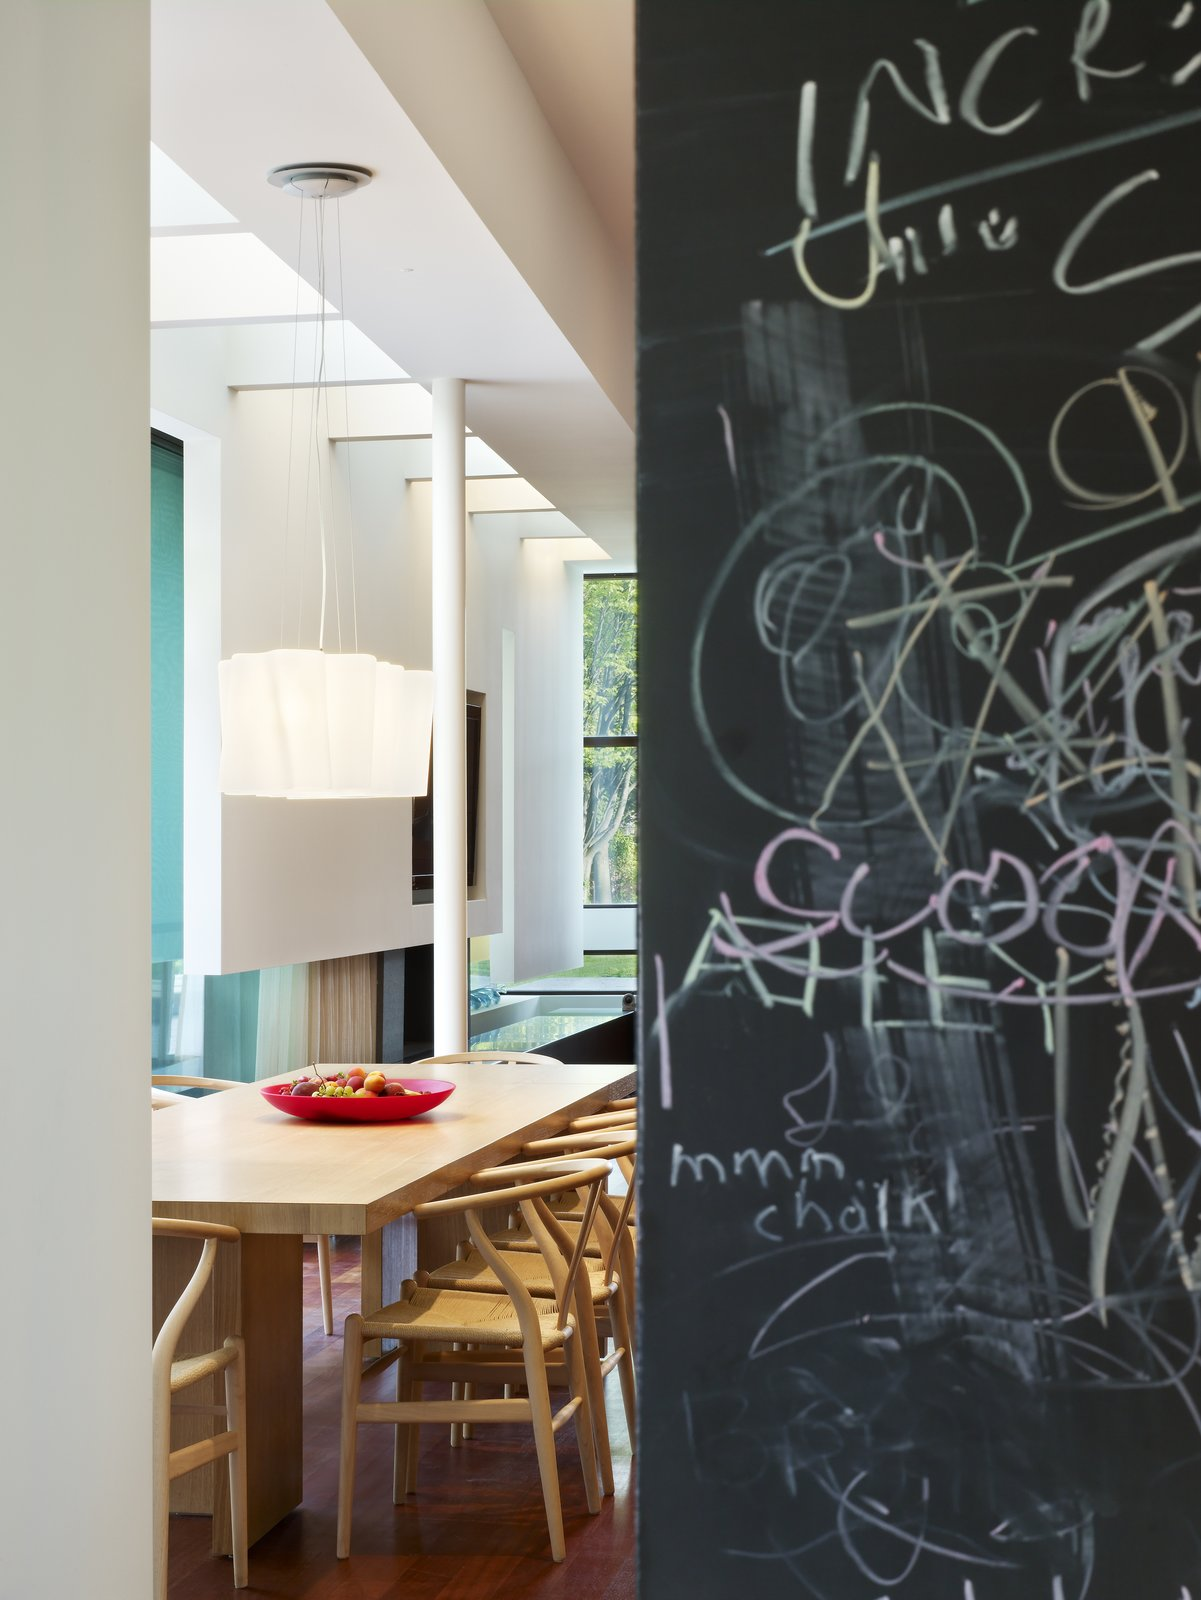 A chalkboard wall adds playfulness to the communal kitchen area.   Davis Residence by Abramson Teiger Architects